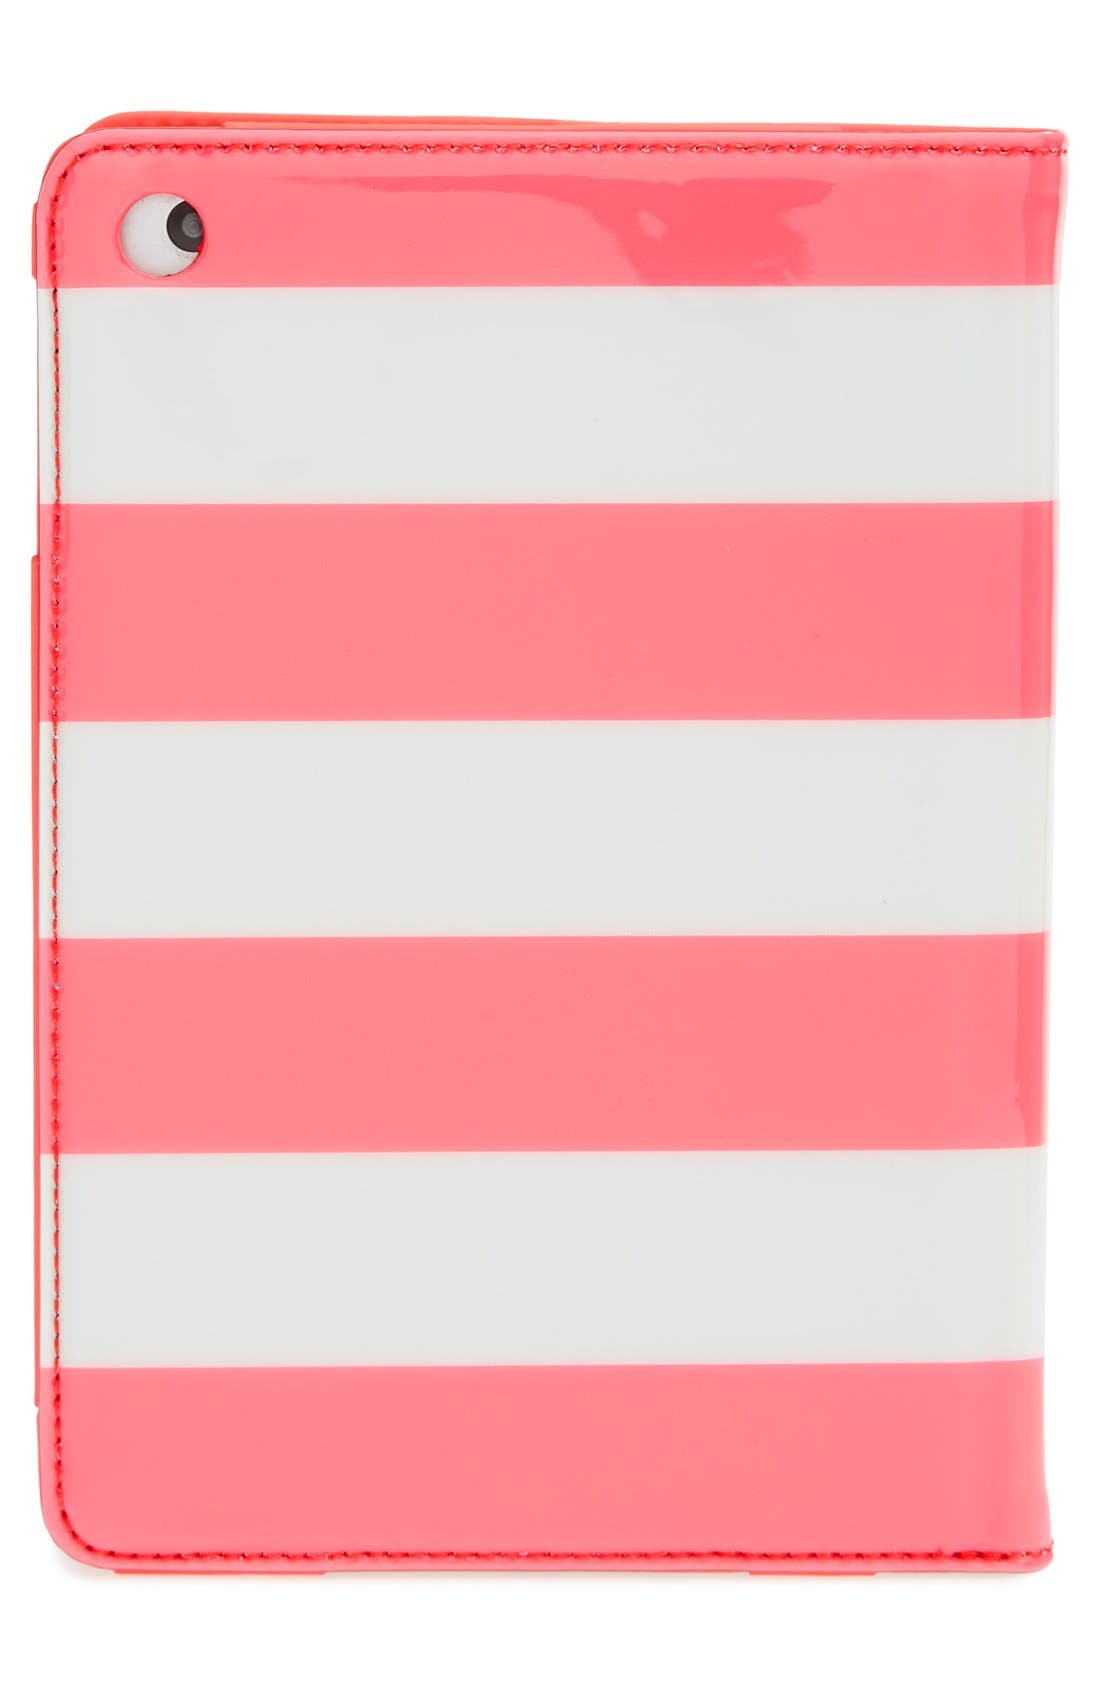 Alternate Image 4  - kate spade new york 'fairmont square' iPad mini hardcase folio